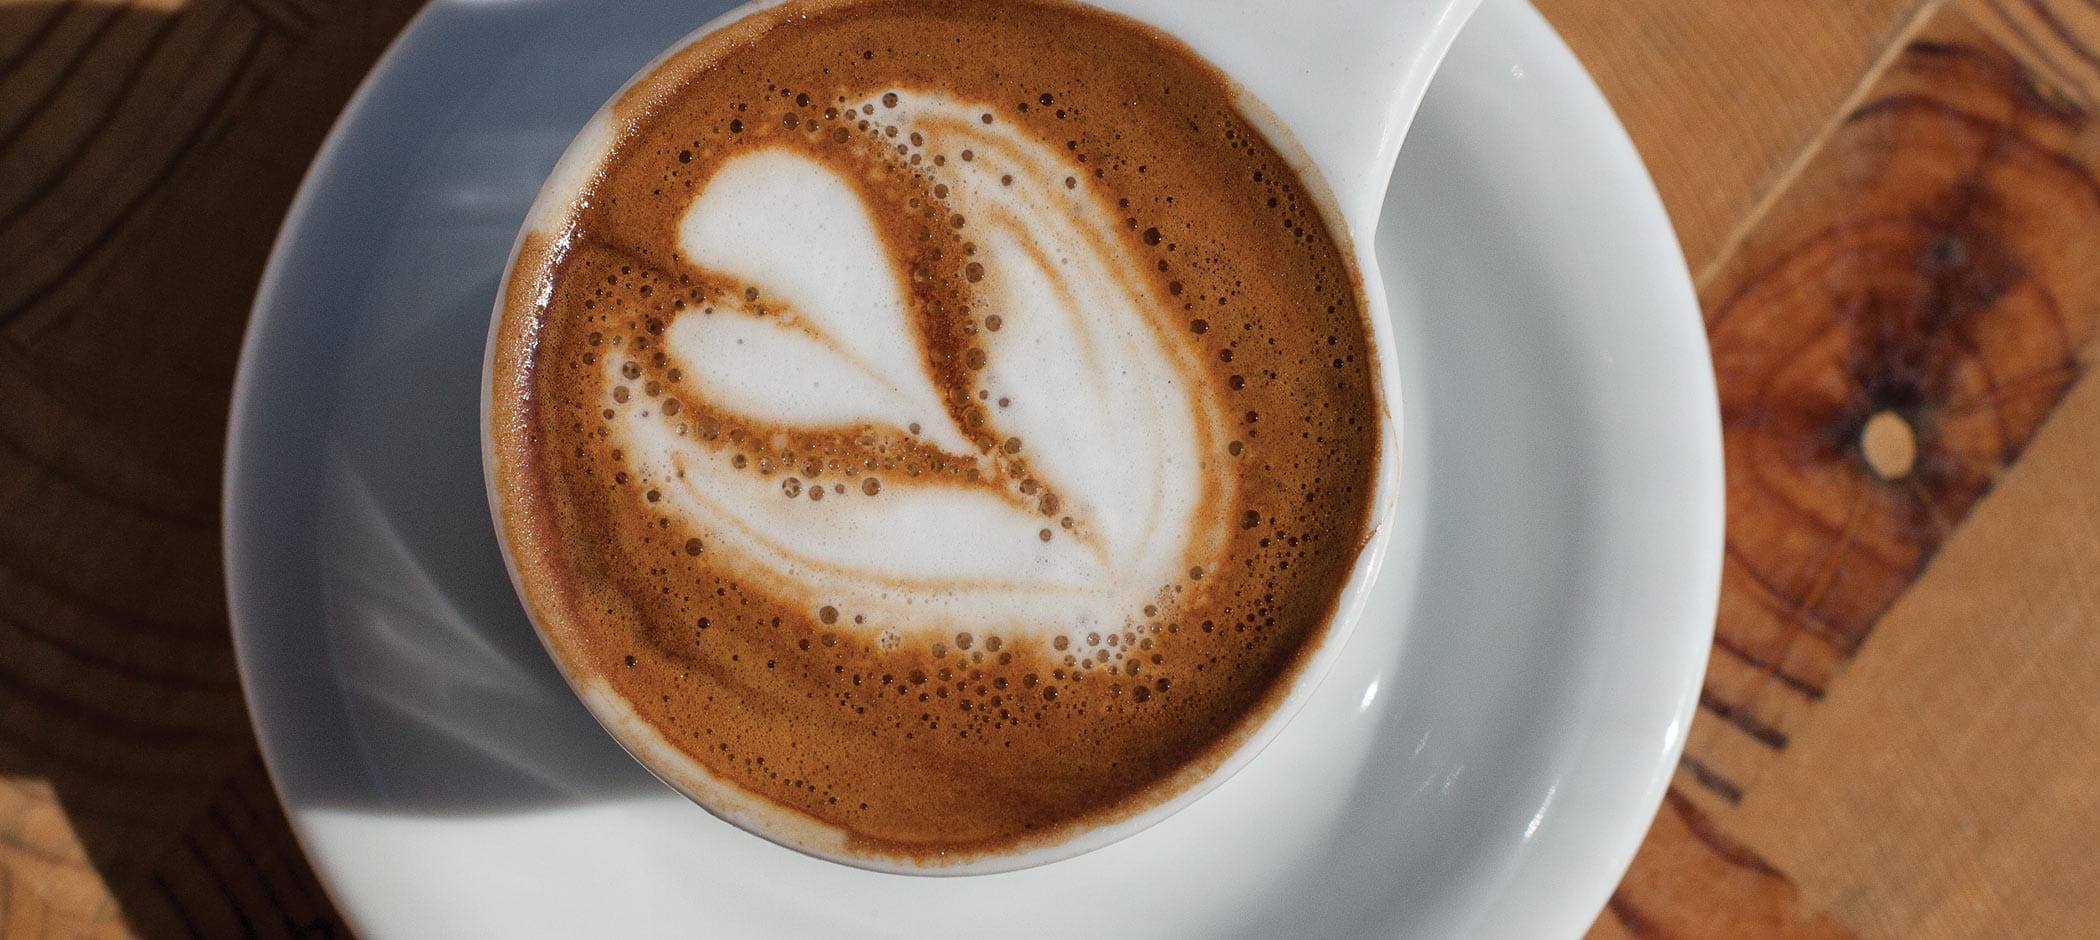 A latte at Great Lakes Coffee Roasting Company in Detroit